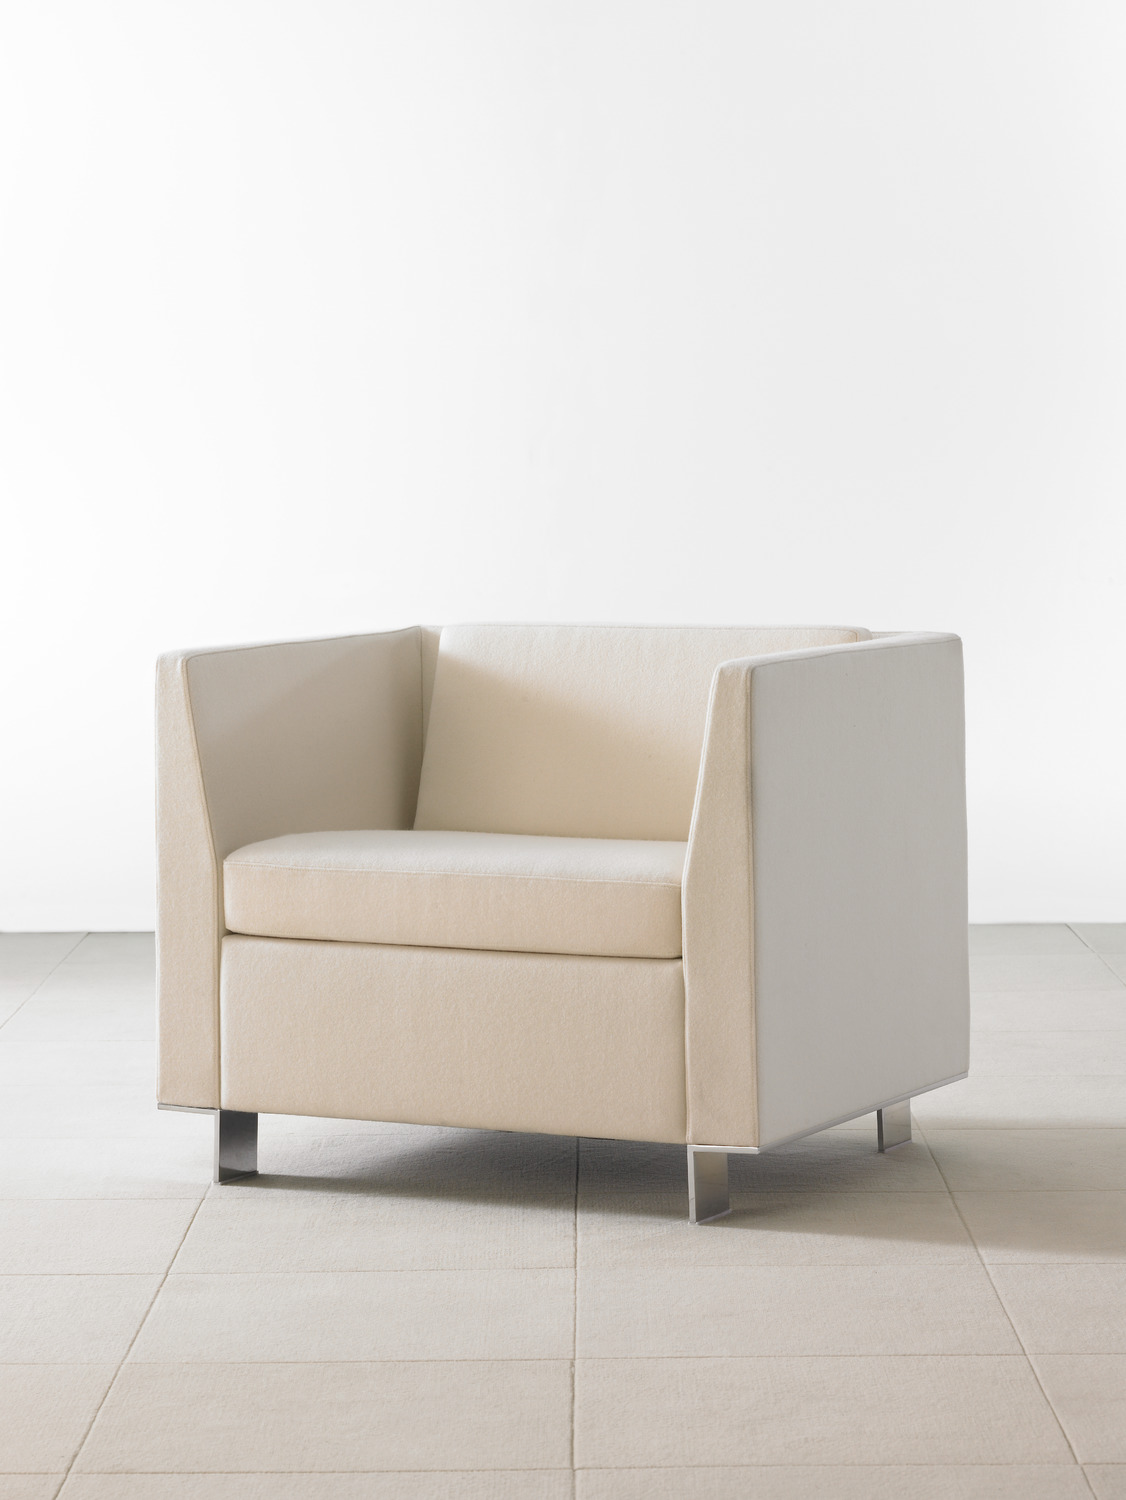 Vignette Lounge Seating - 3/4 View - Cube Lounge Chair